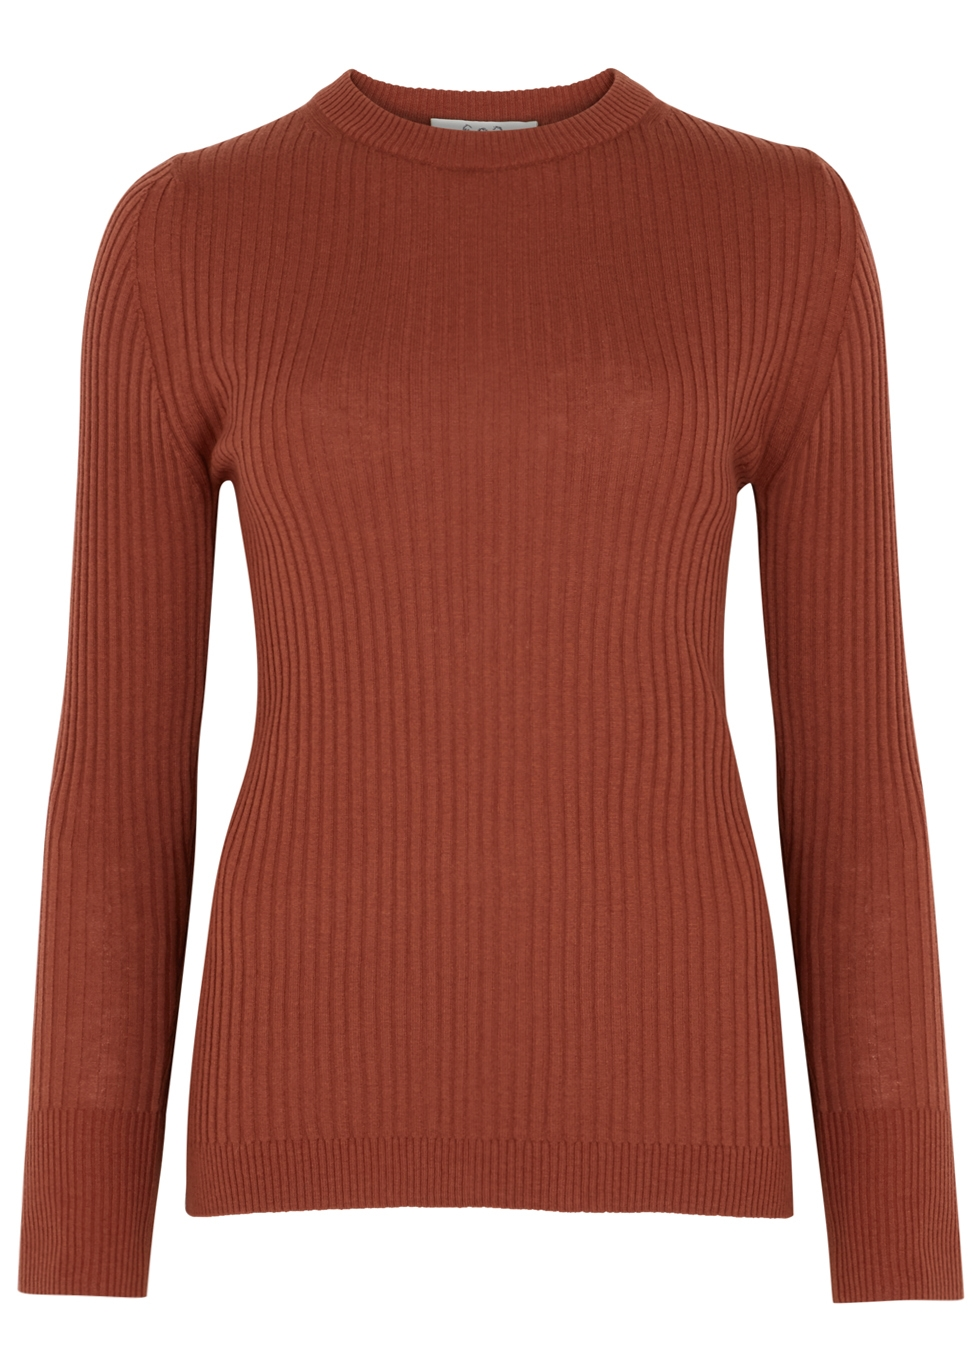 SEA NY Brielle Terracotta Wool Jumper